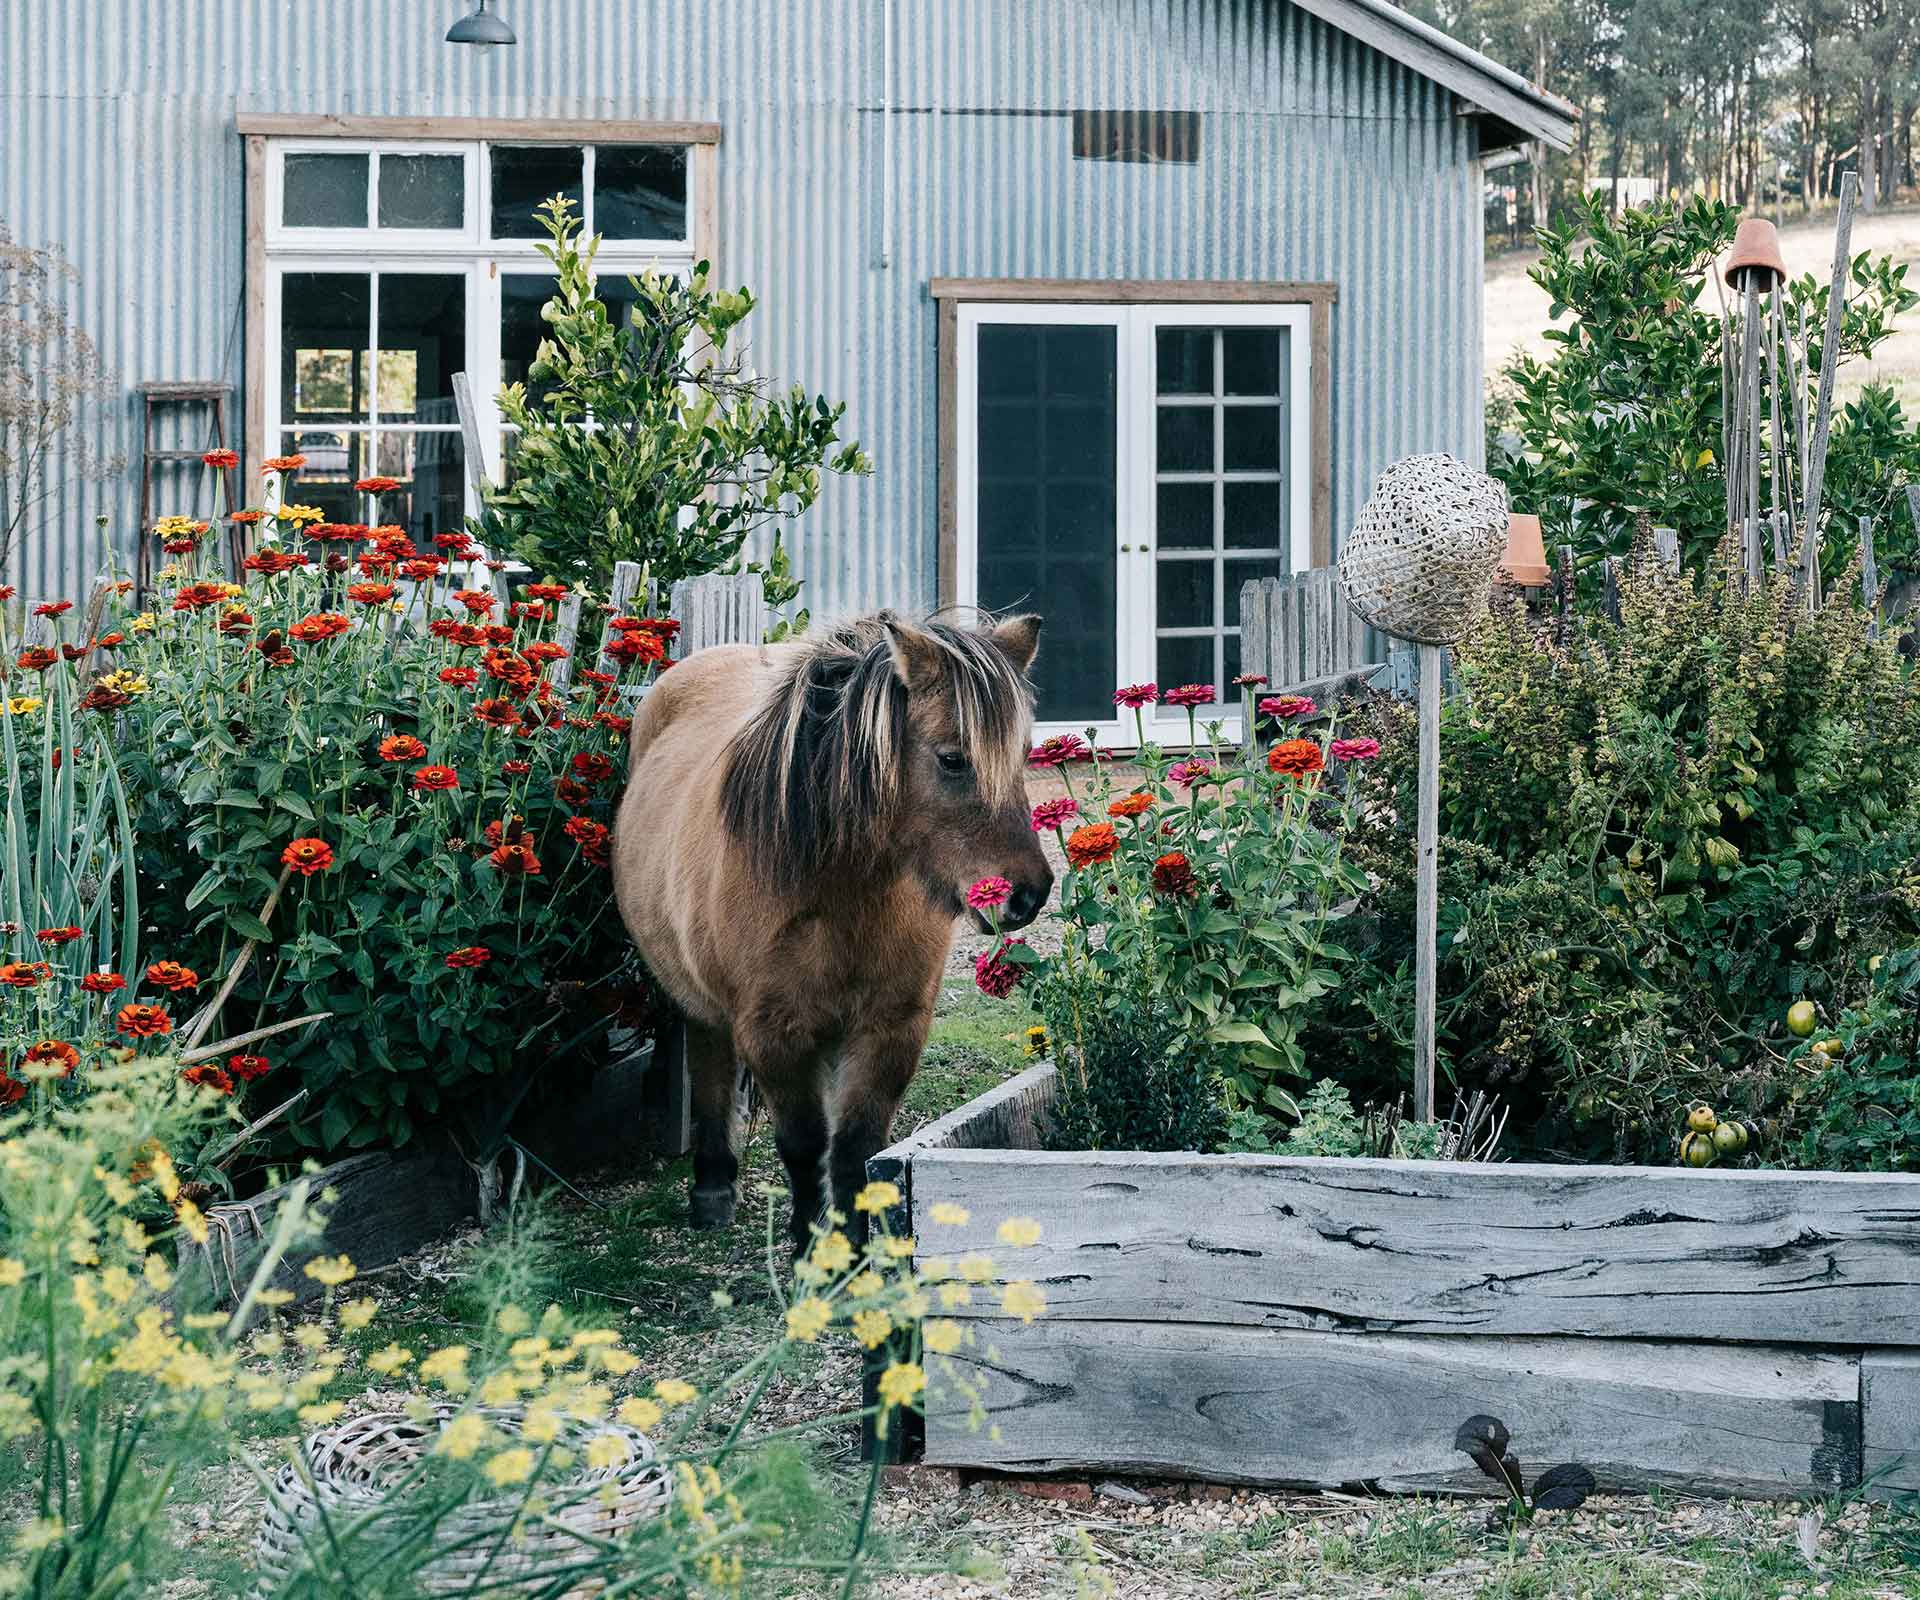 Black Barn Farm: Tour the apple orchard and family cottage